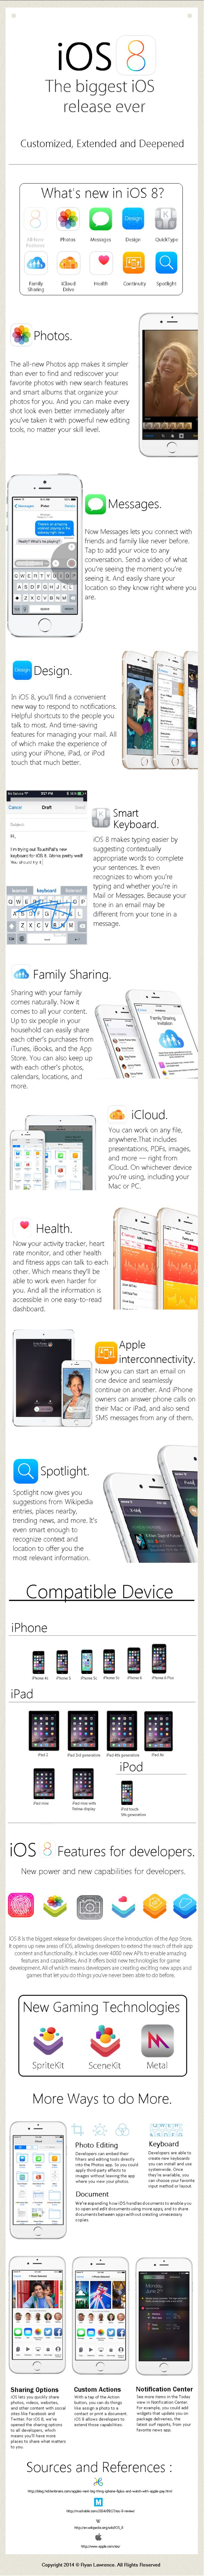 [Infographic] Apple iOS 8 Features : Everything you need to know! by Ryan Lawrence via slideshare